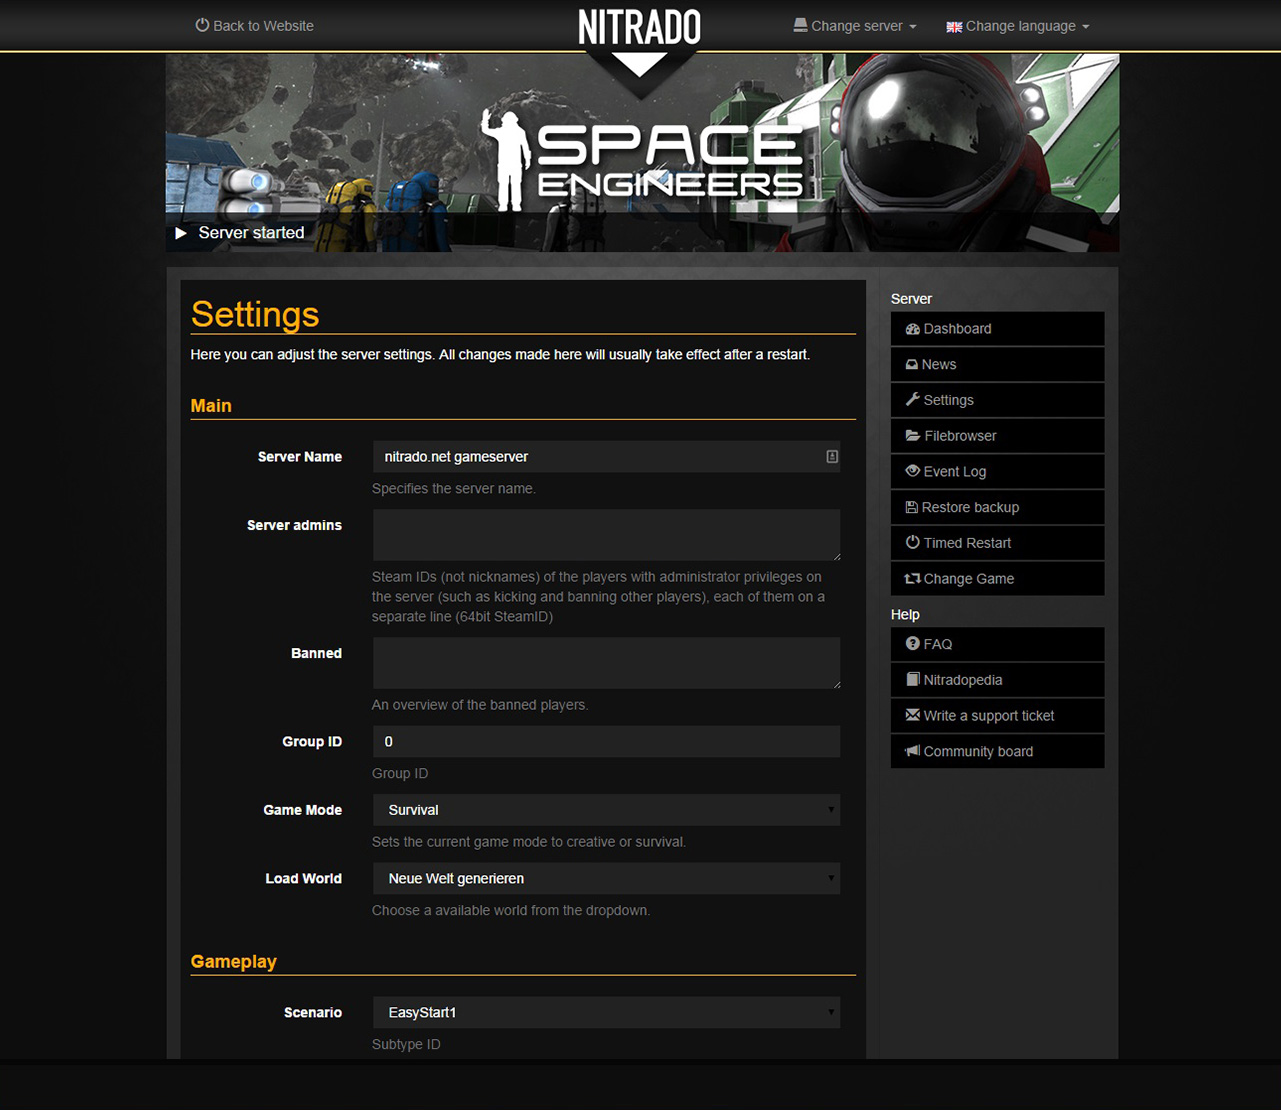 Nitrado Space Engineers Settings